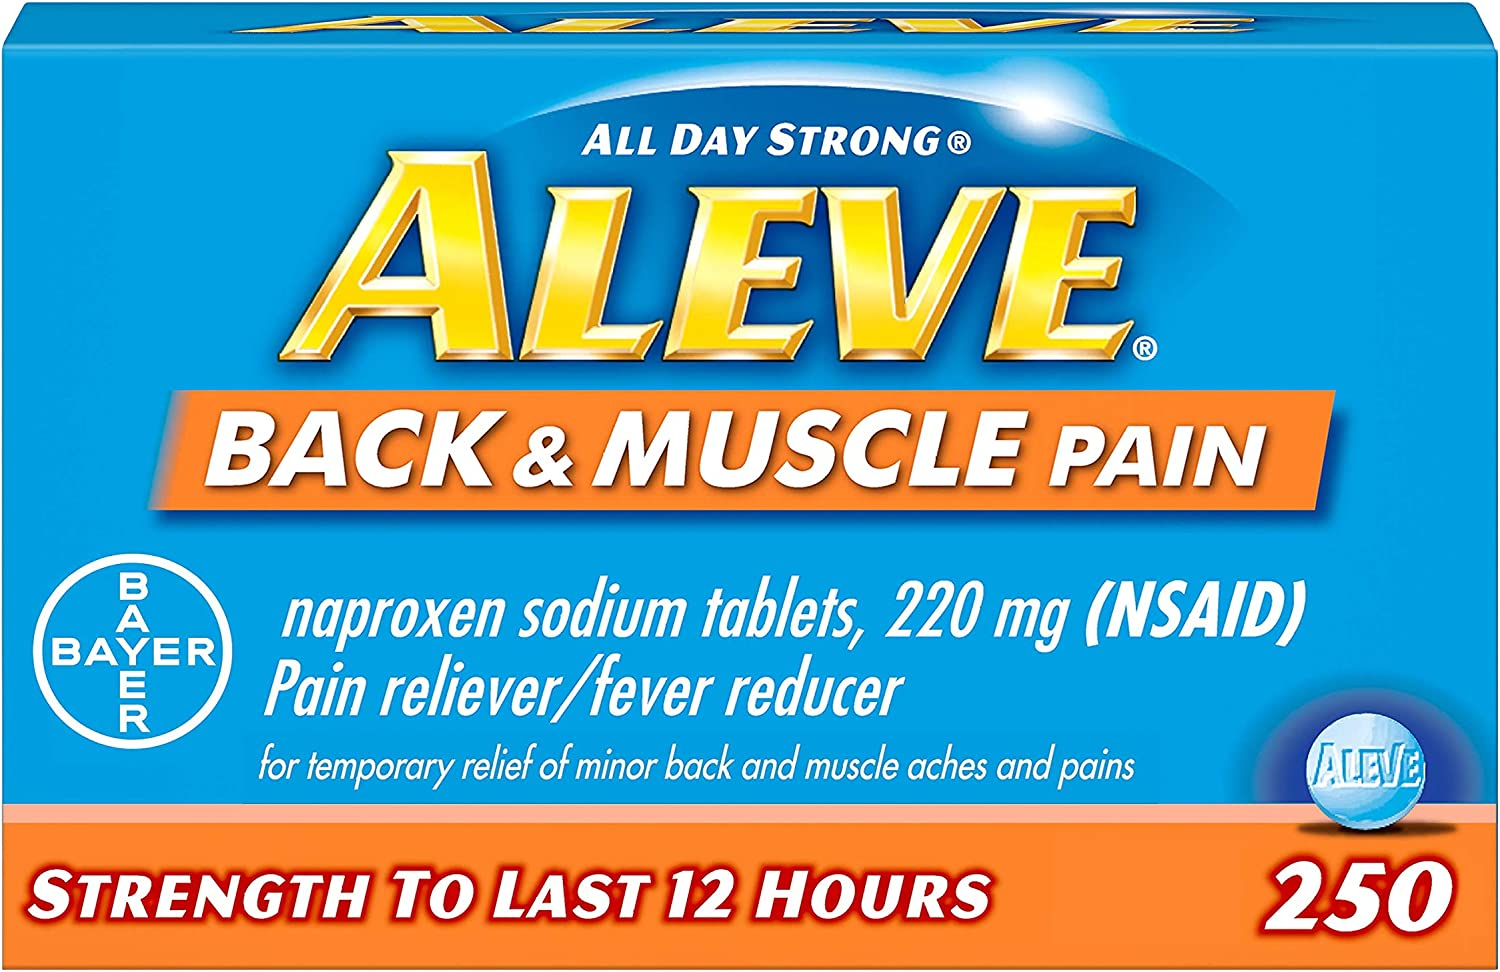 Aleve Back and Muscle Pain Tablets, Fast Acting All Day Targeted Relief for Headache, Muscle, and Back Pain, Naproxen Sodium Capsules, 220 mg, 250 Count : Health & Household